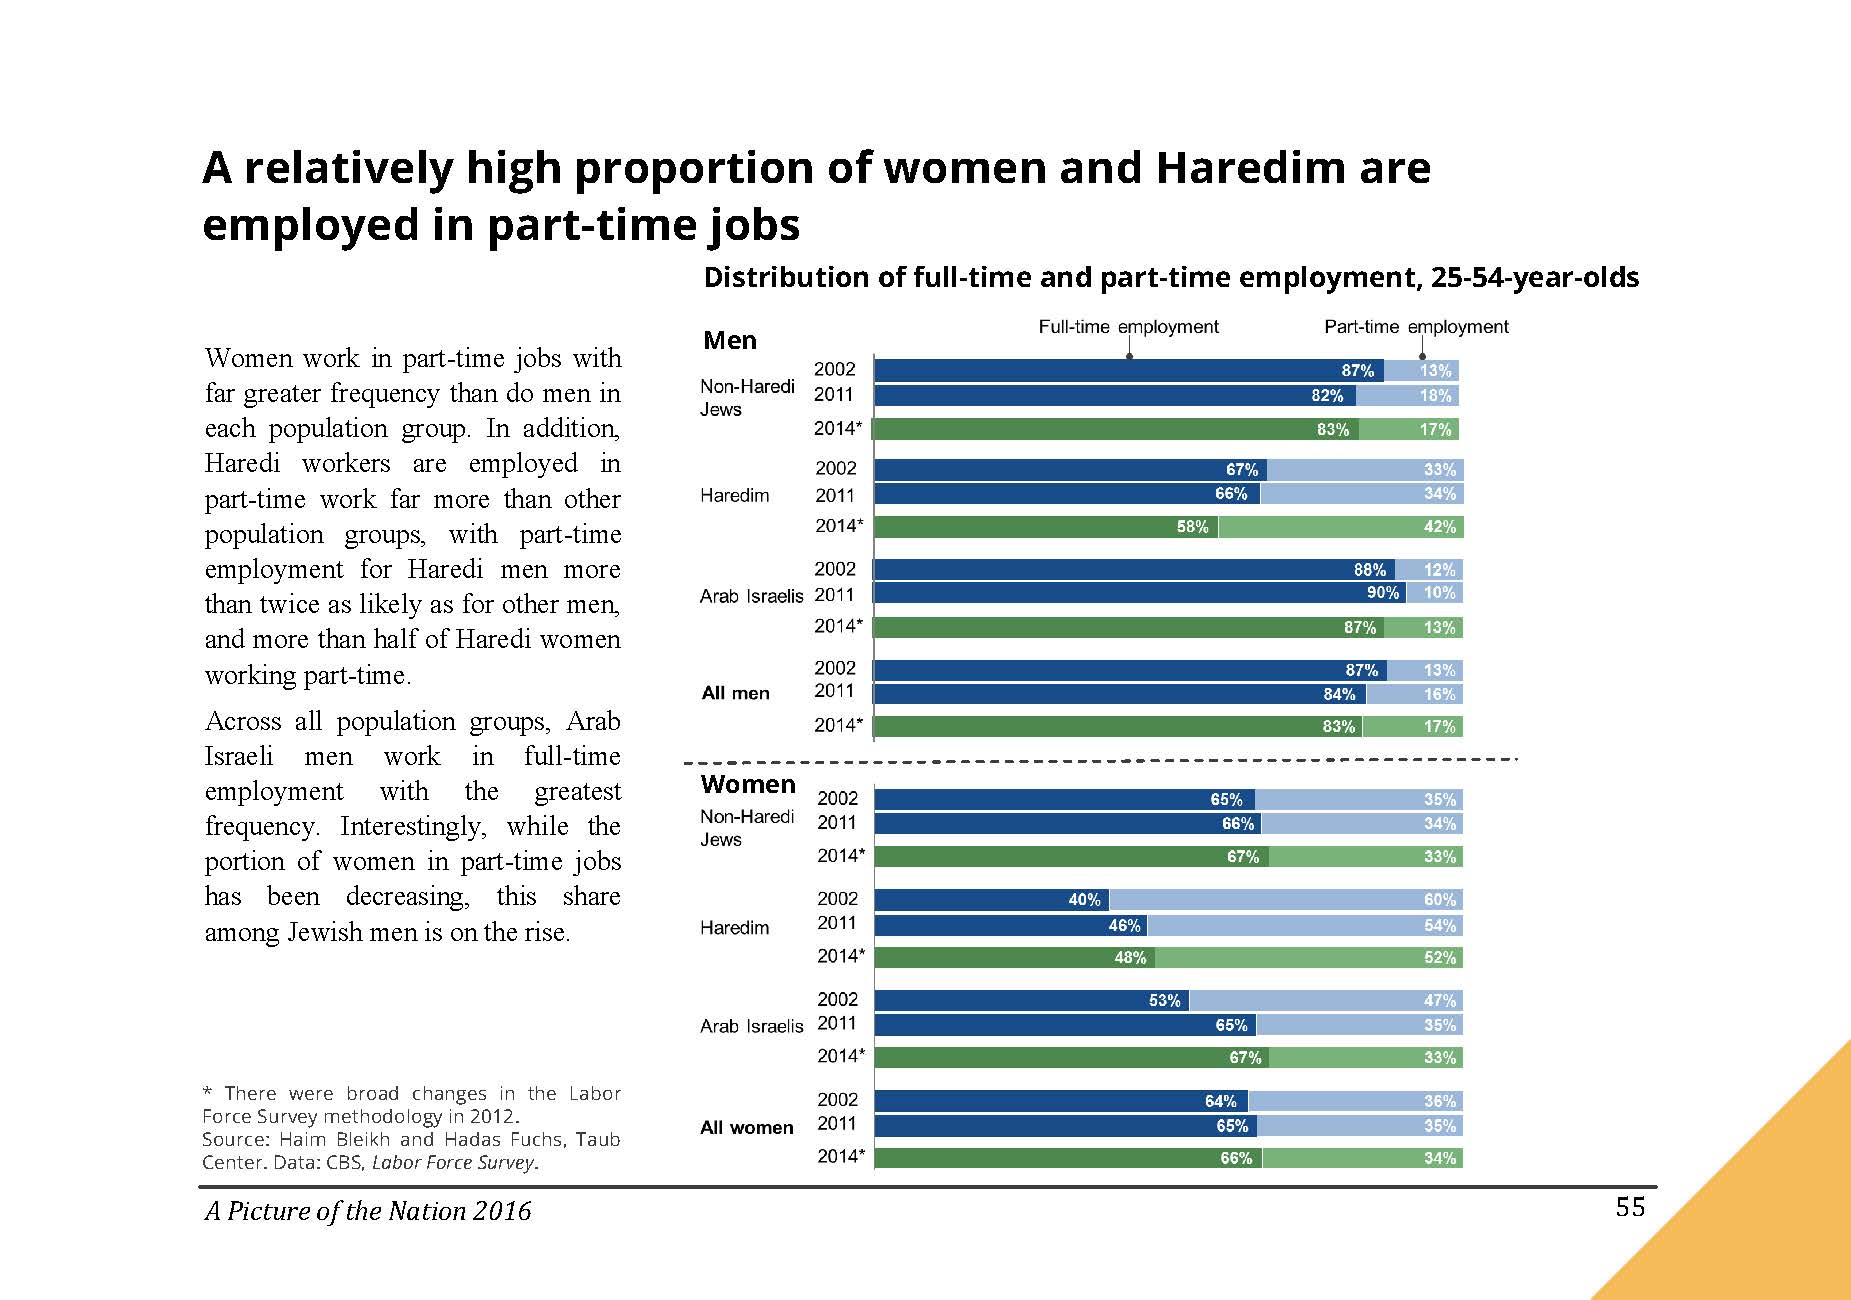 A relatively high proportion of women and Haredim are employed in part-time jobs in Israel